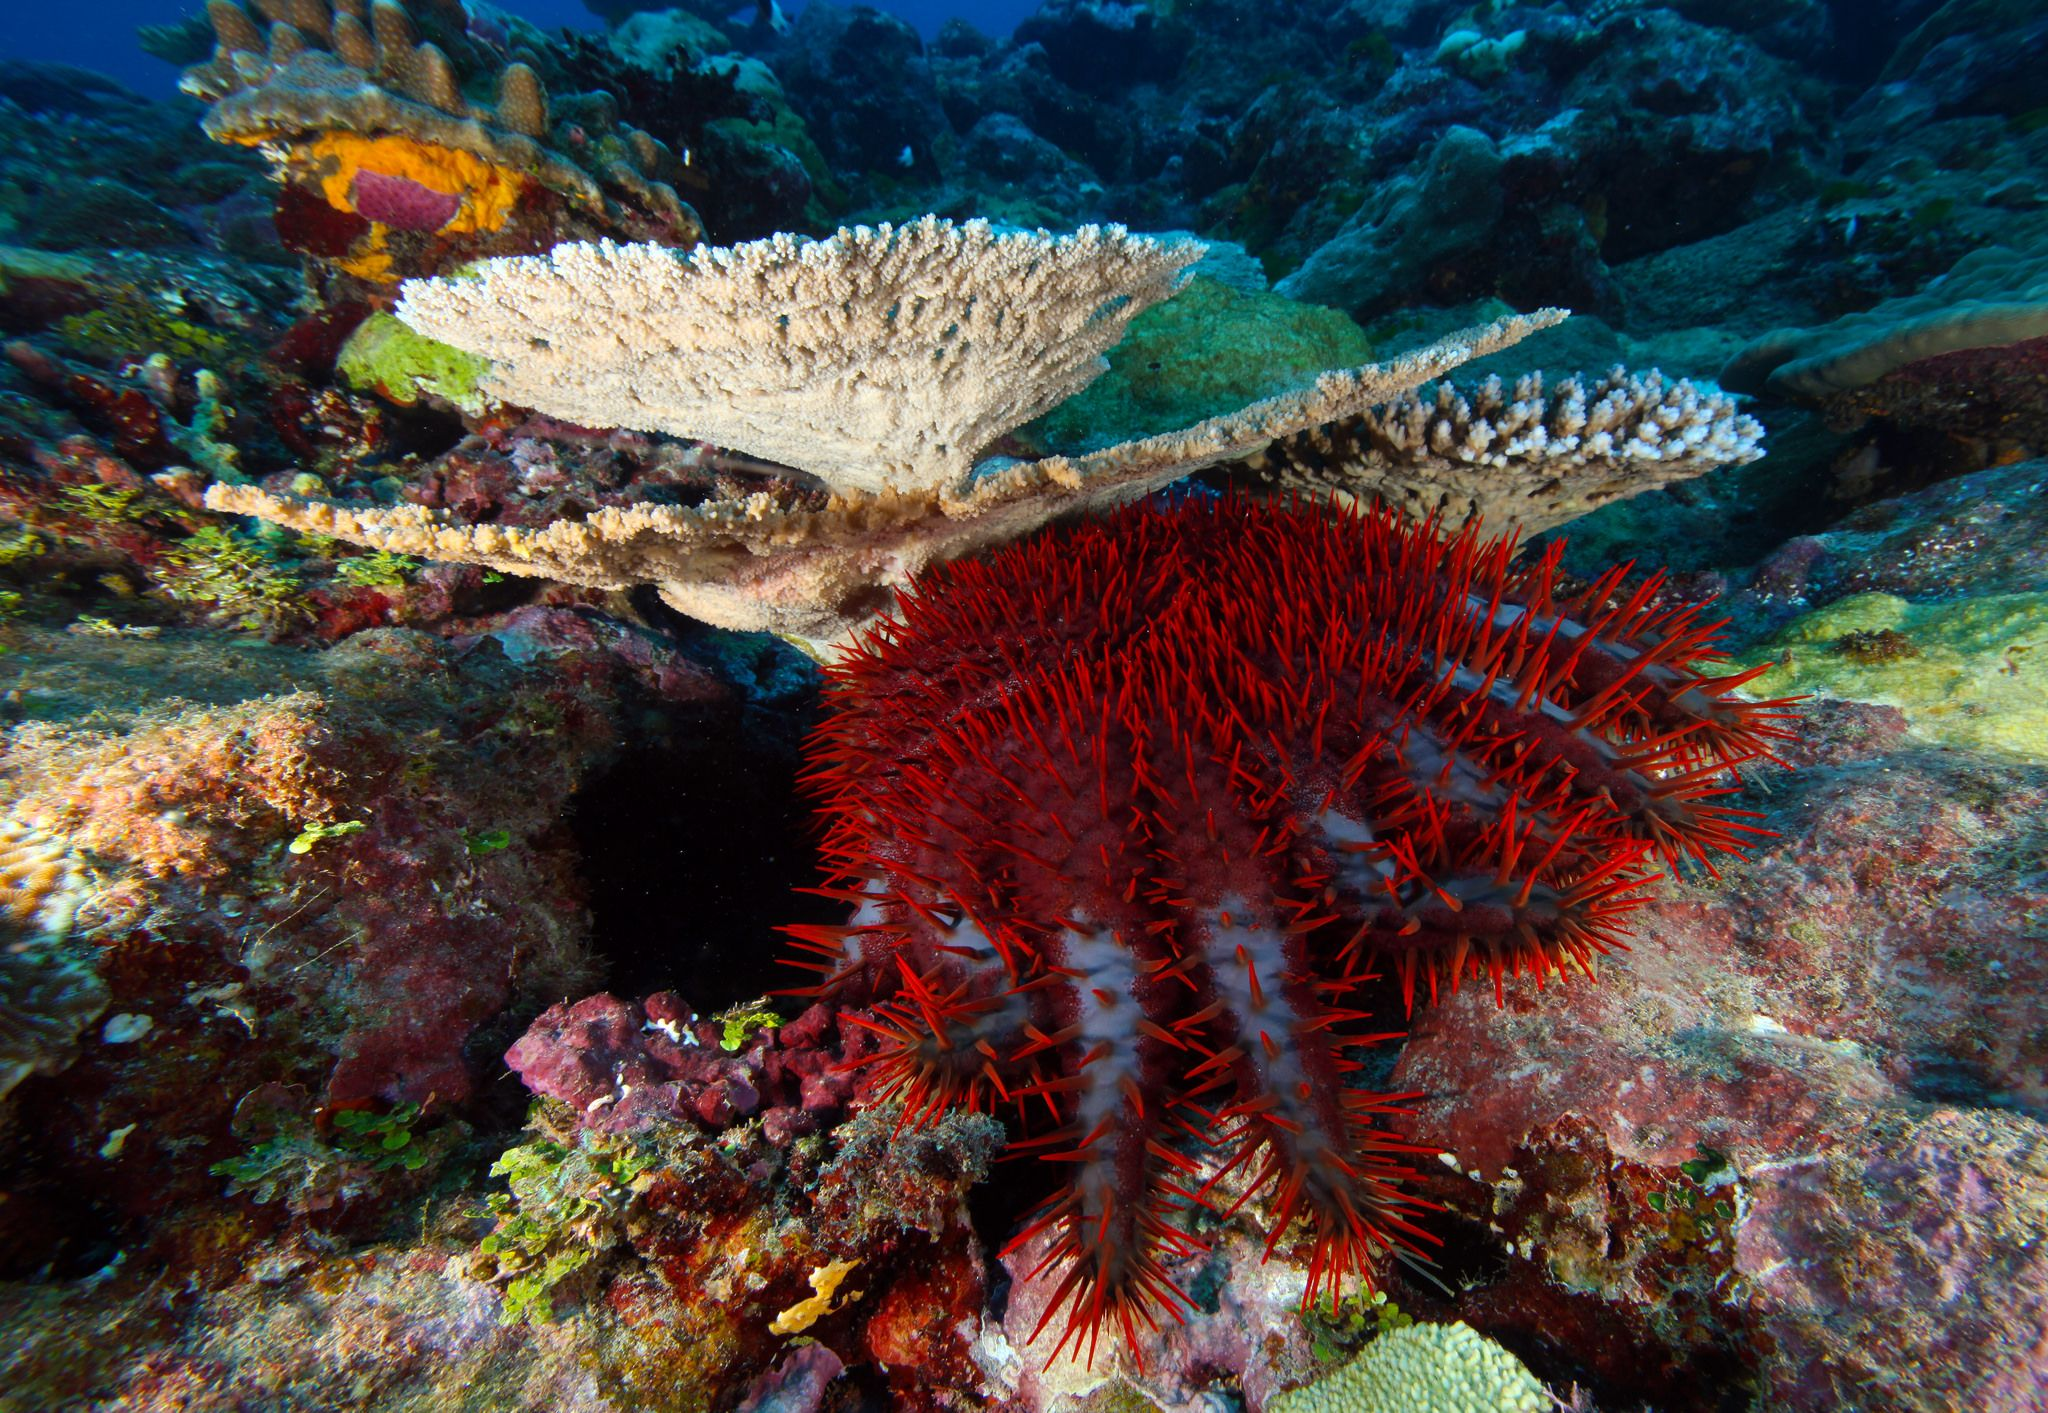 01_19_crown_of_thorns_starfish